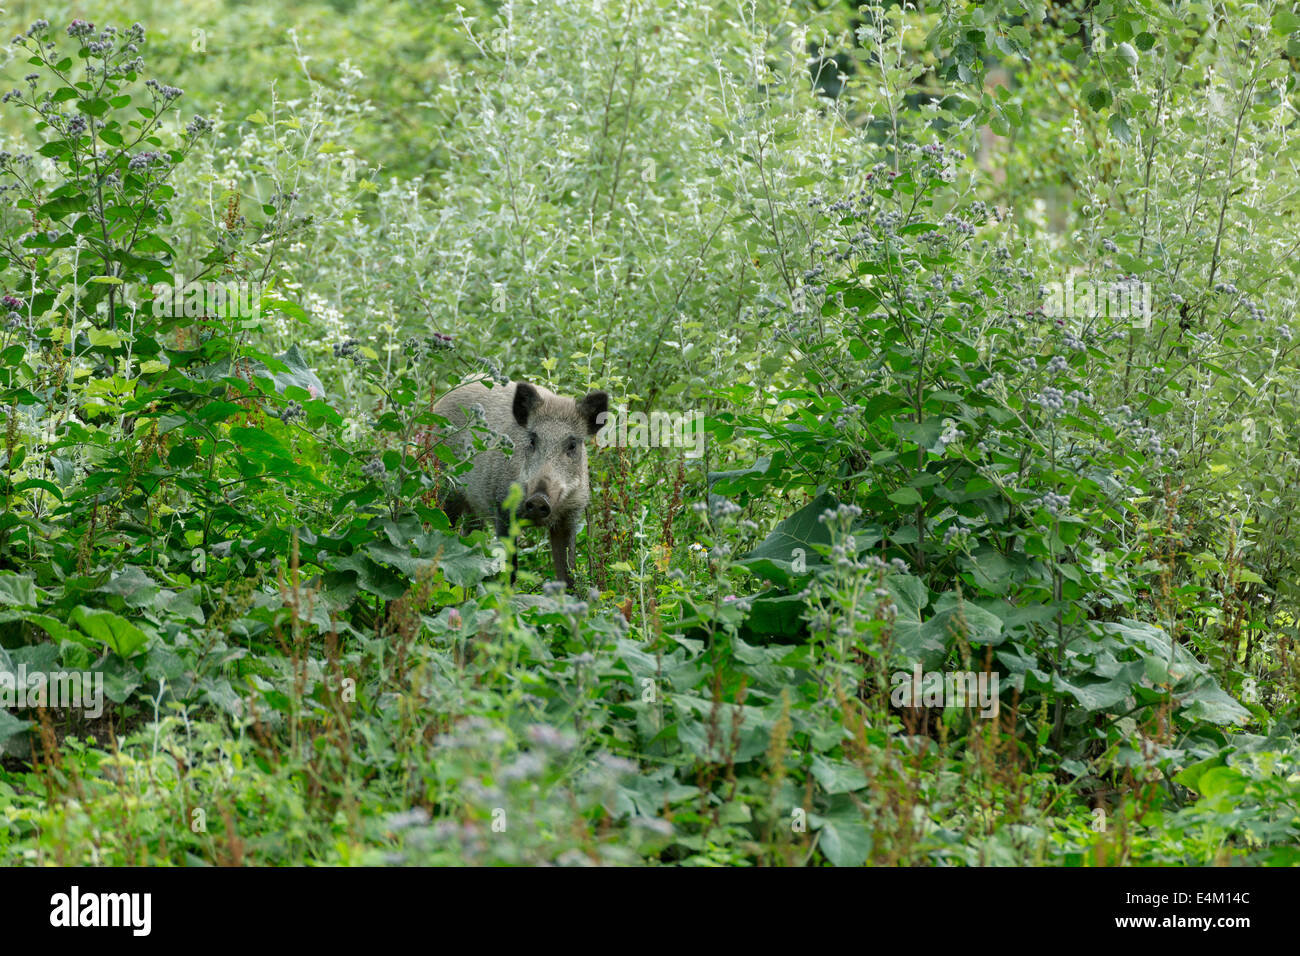 Young wild boar with curious look into the camera - Stock Image